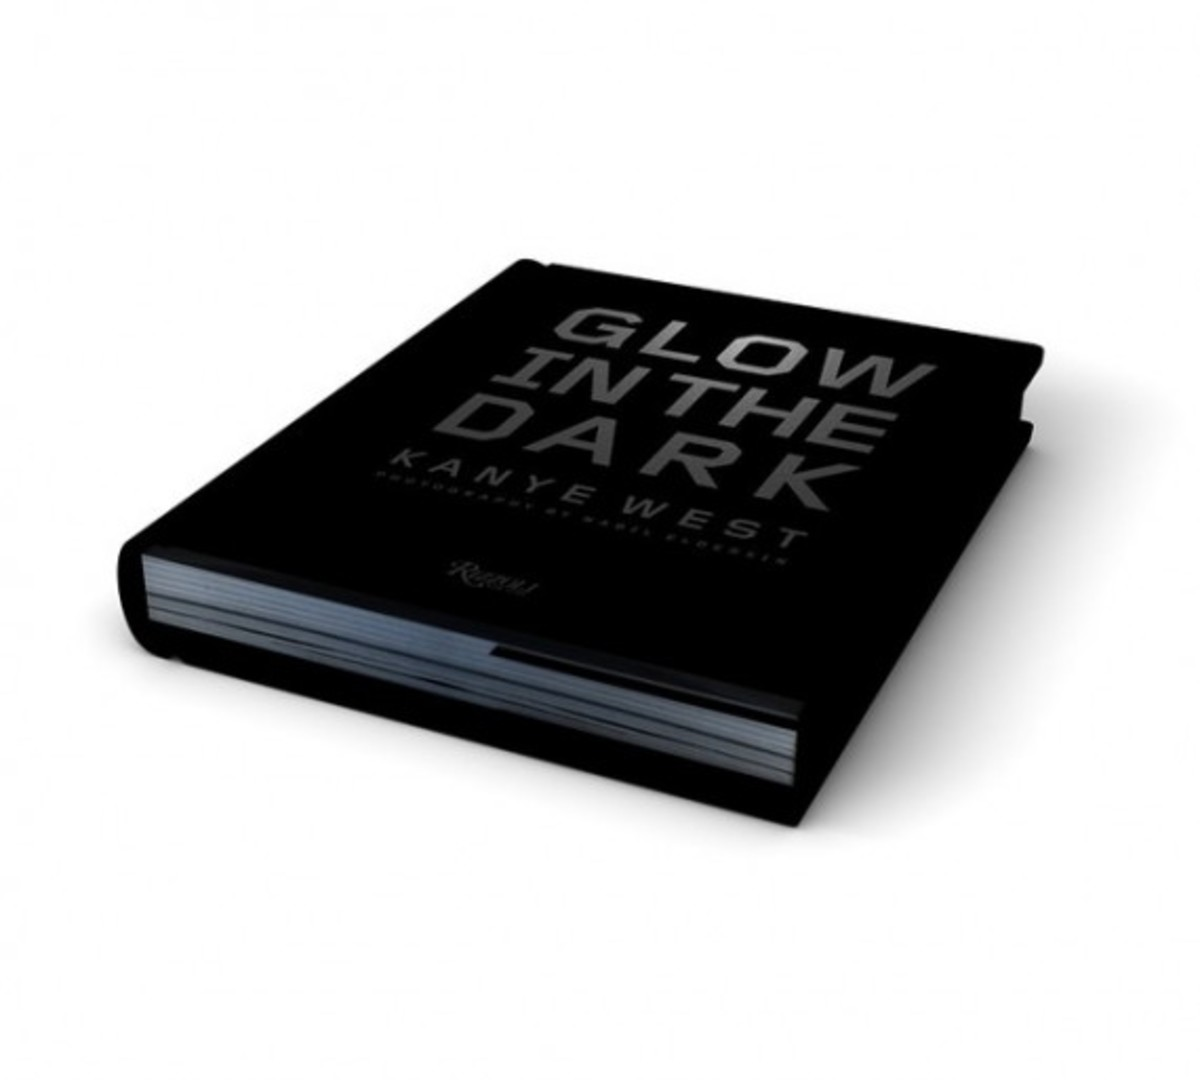 kanye-west-glow-in-the-dark-book-6